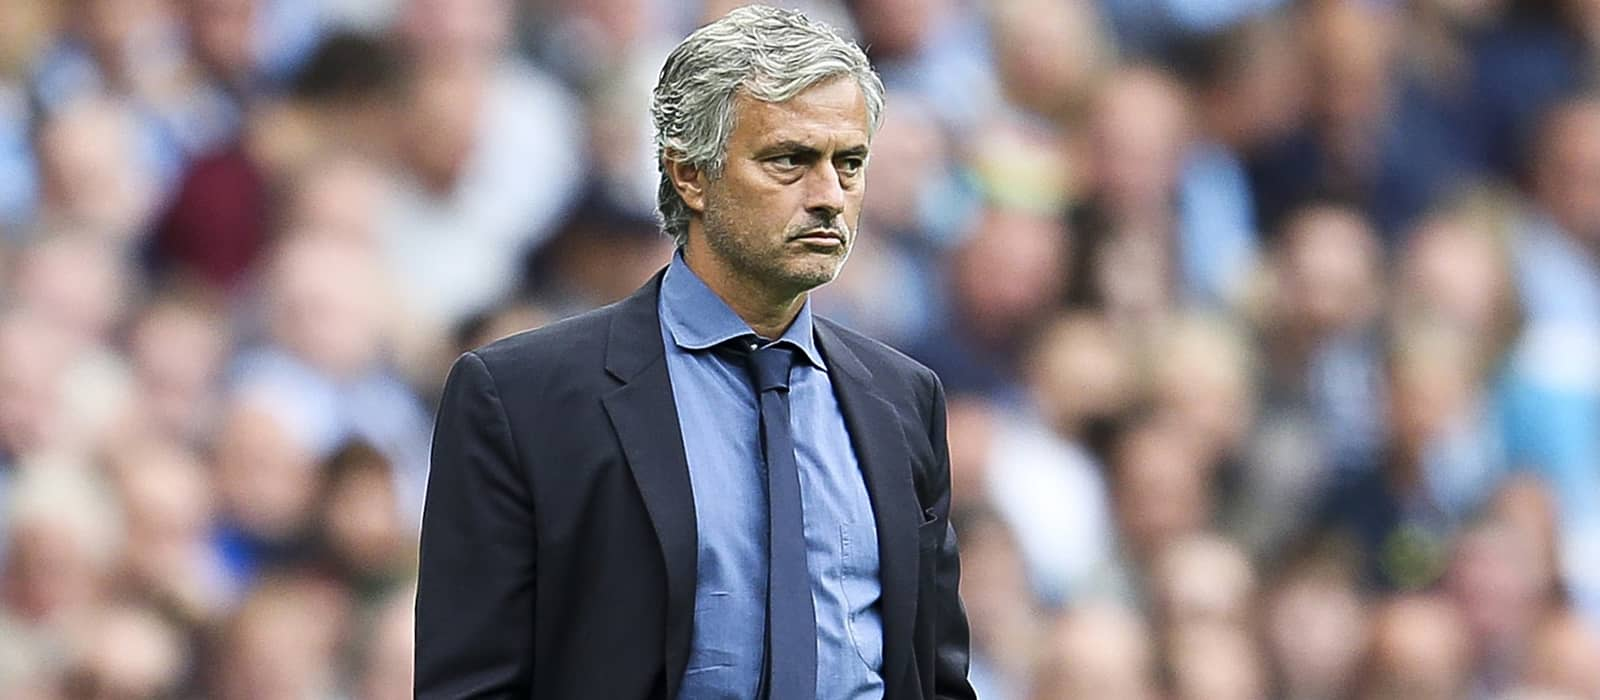 Damien Duff: Jose Mourinho is the 'only man' for Manchester United